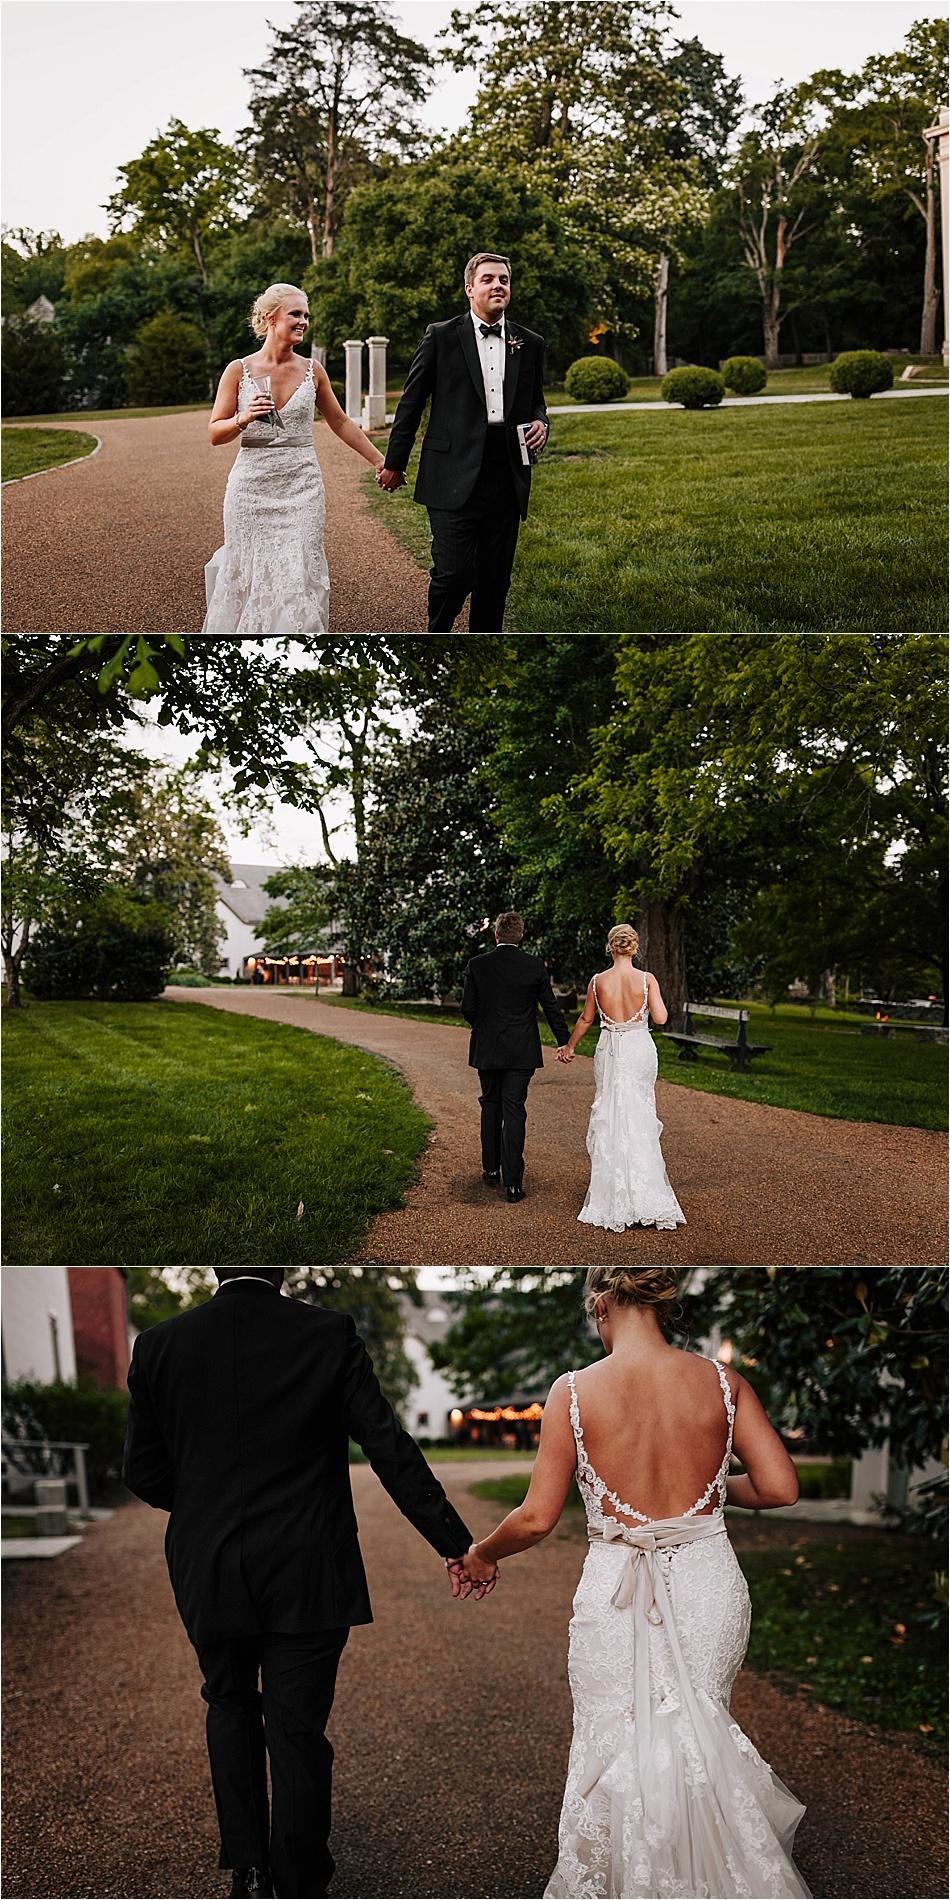 CK-Photo-Nashville-engagement-wedding-photographer-belle-meade-plantation-wedding